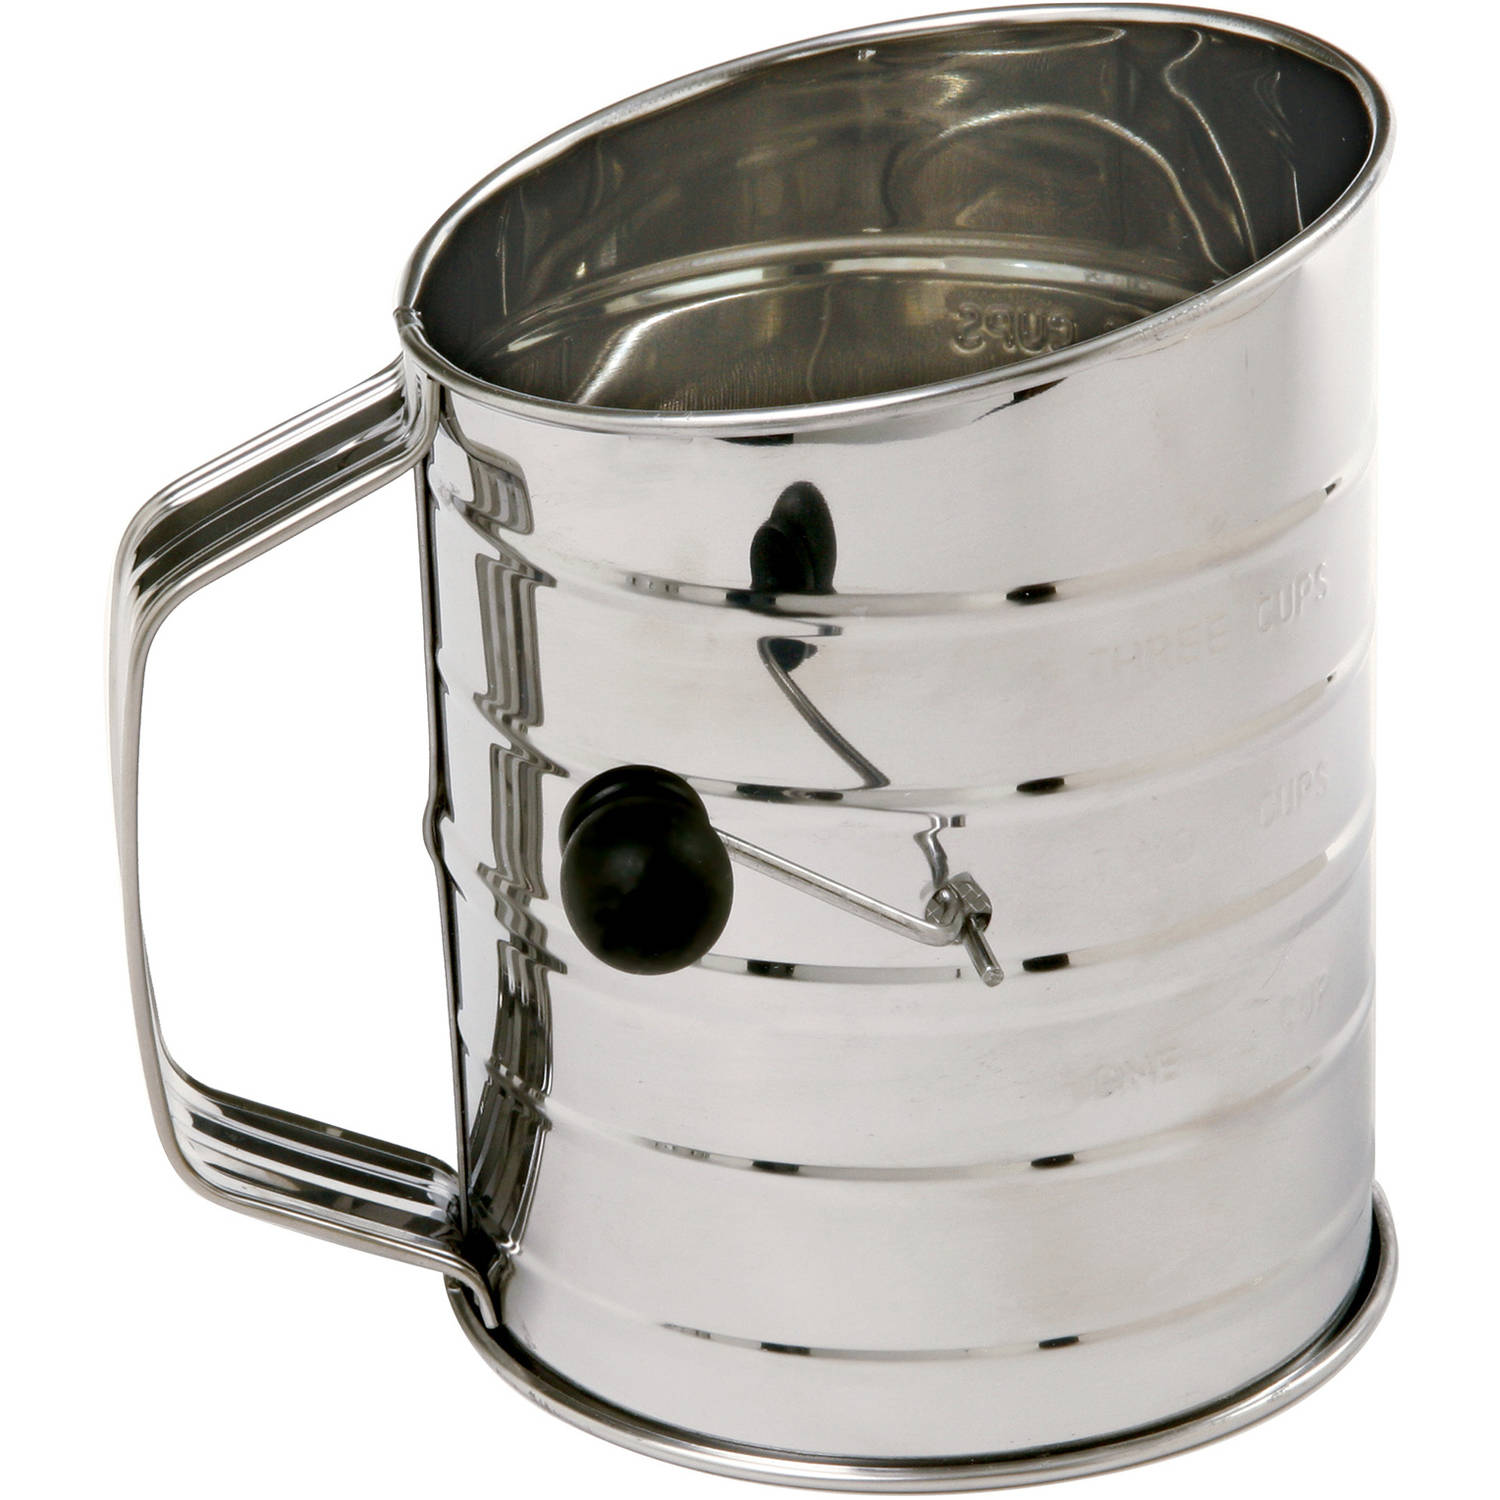 Norpro 3-Cup Stainless Steel Flour Sifter